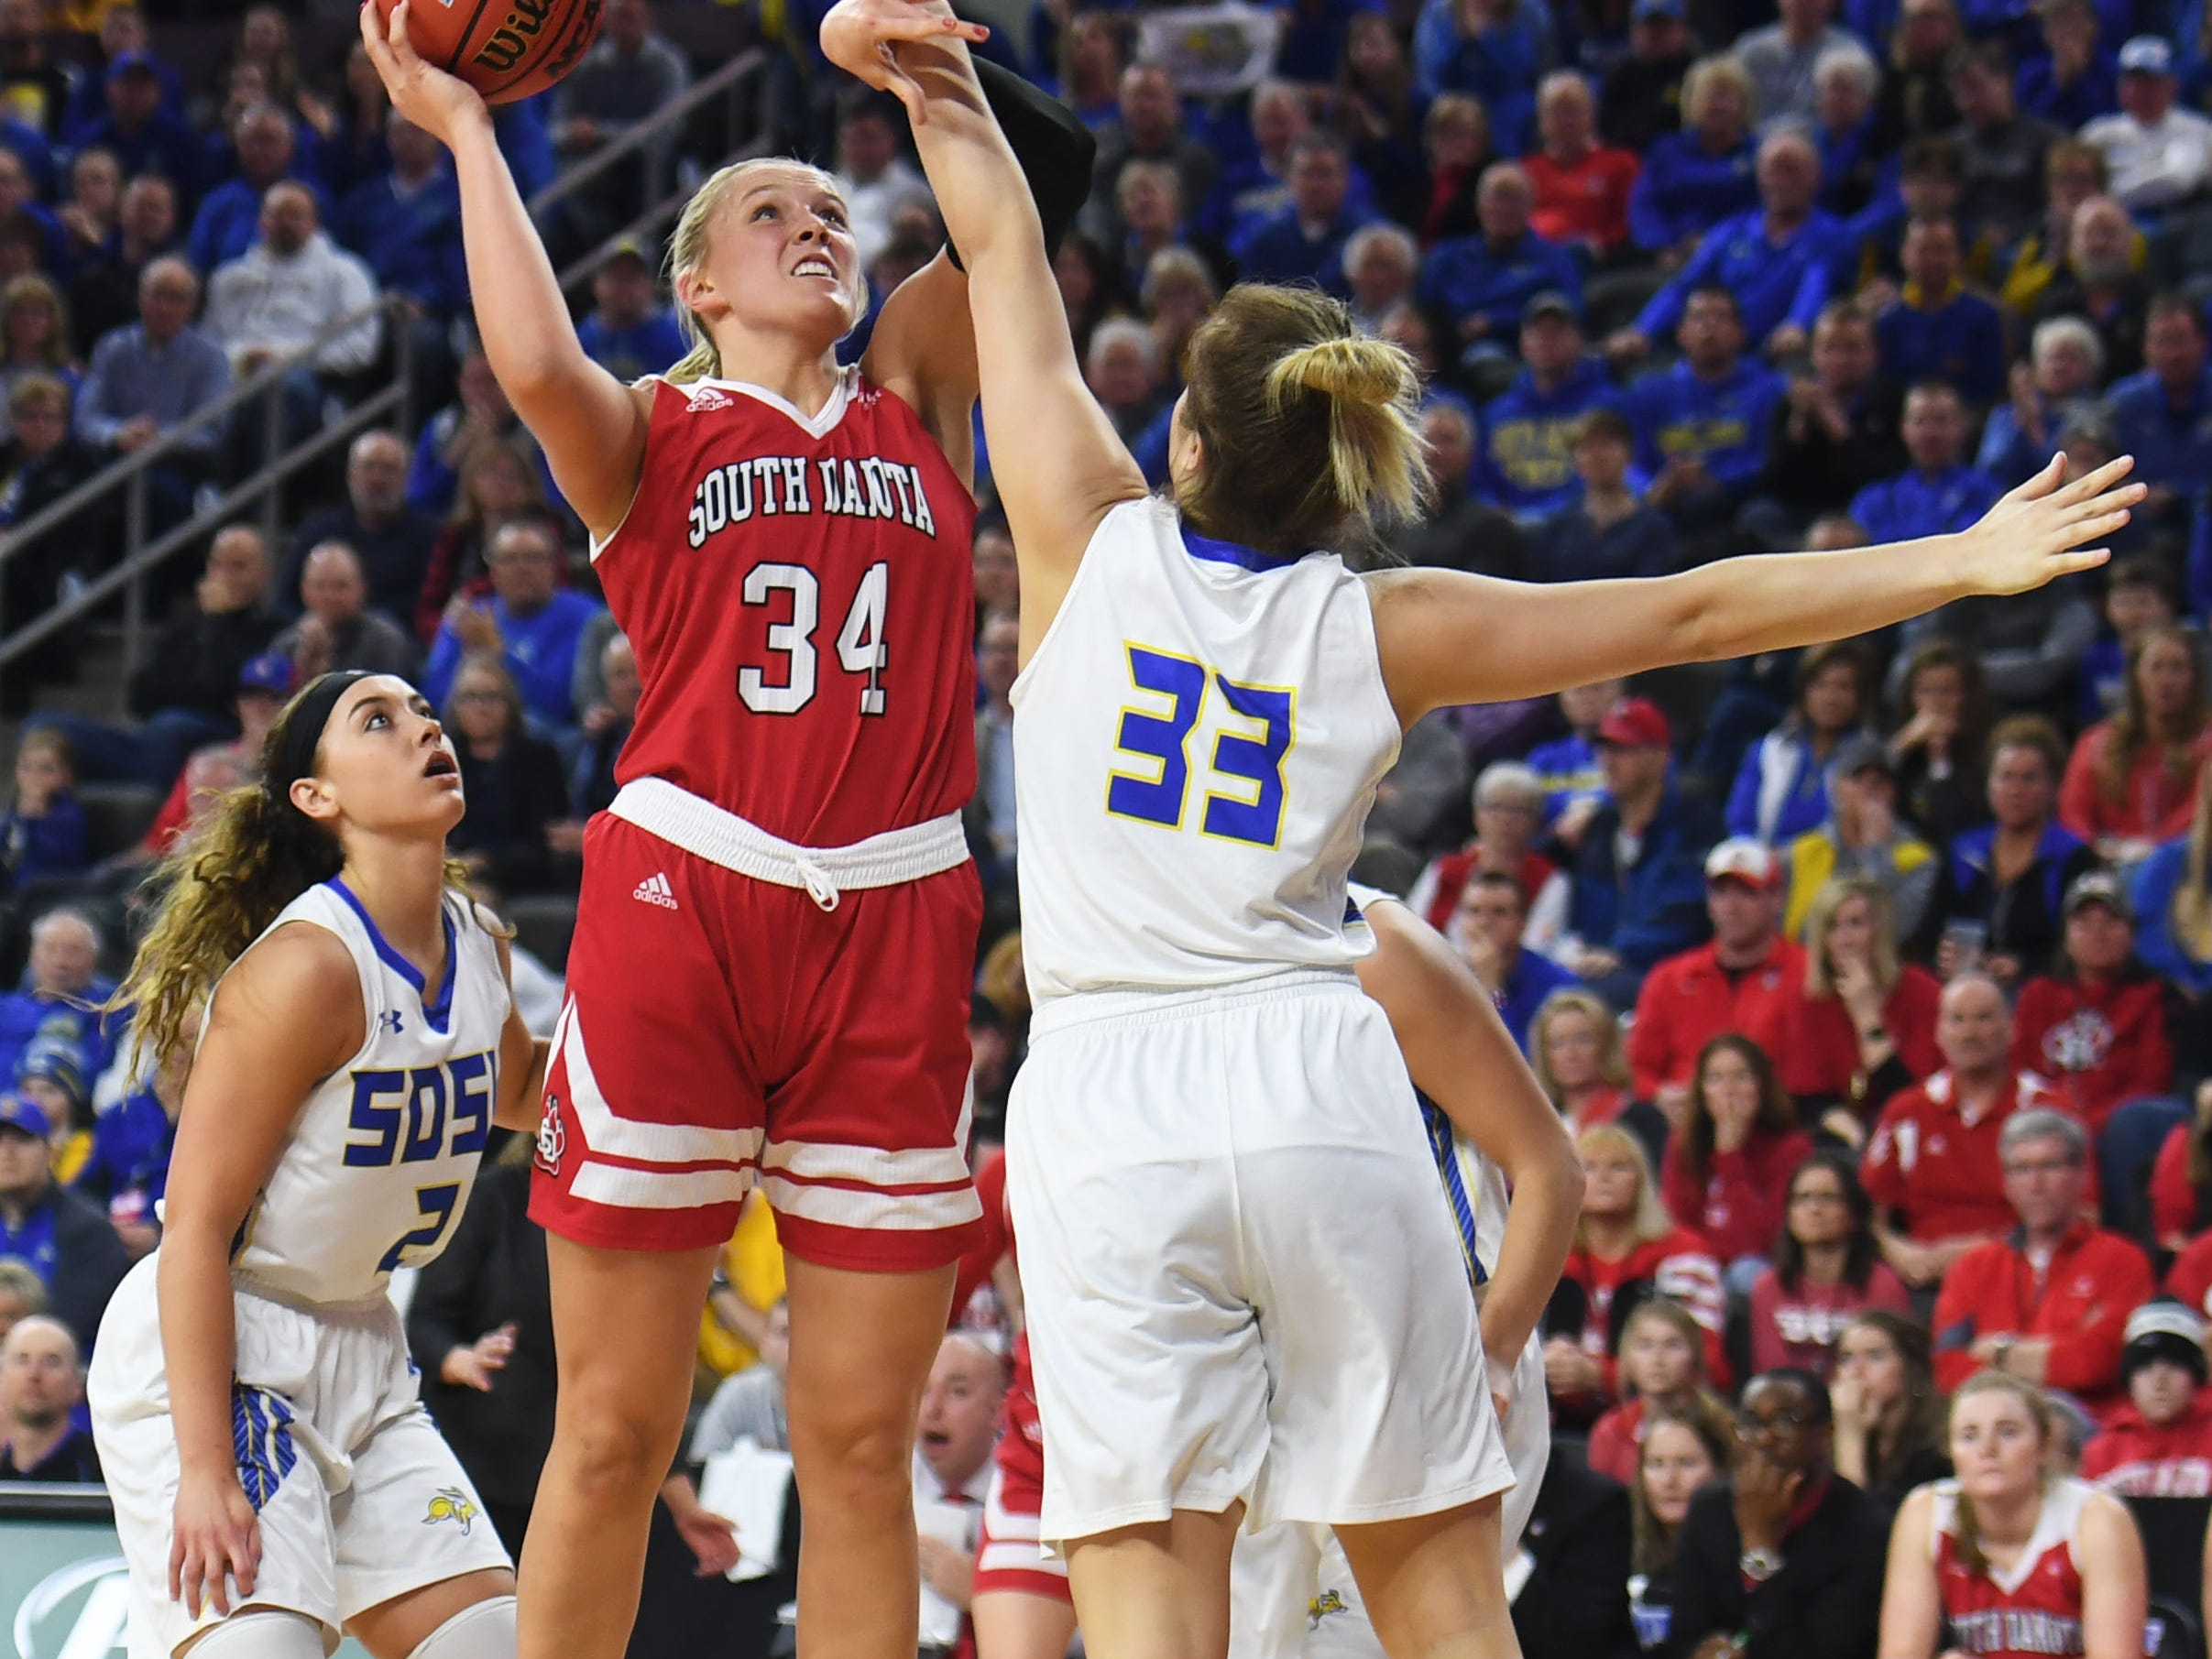 USD's Hannah Sjerven goes against SDSU's Paiton Burckhard during the game Tuesday, March 12, in the Summit League women's championship at the Denny Sanford Premier Center in Sioux Falls.